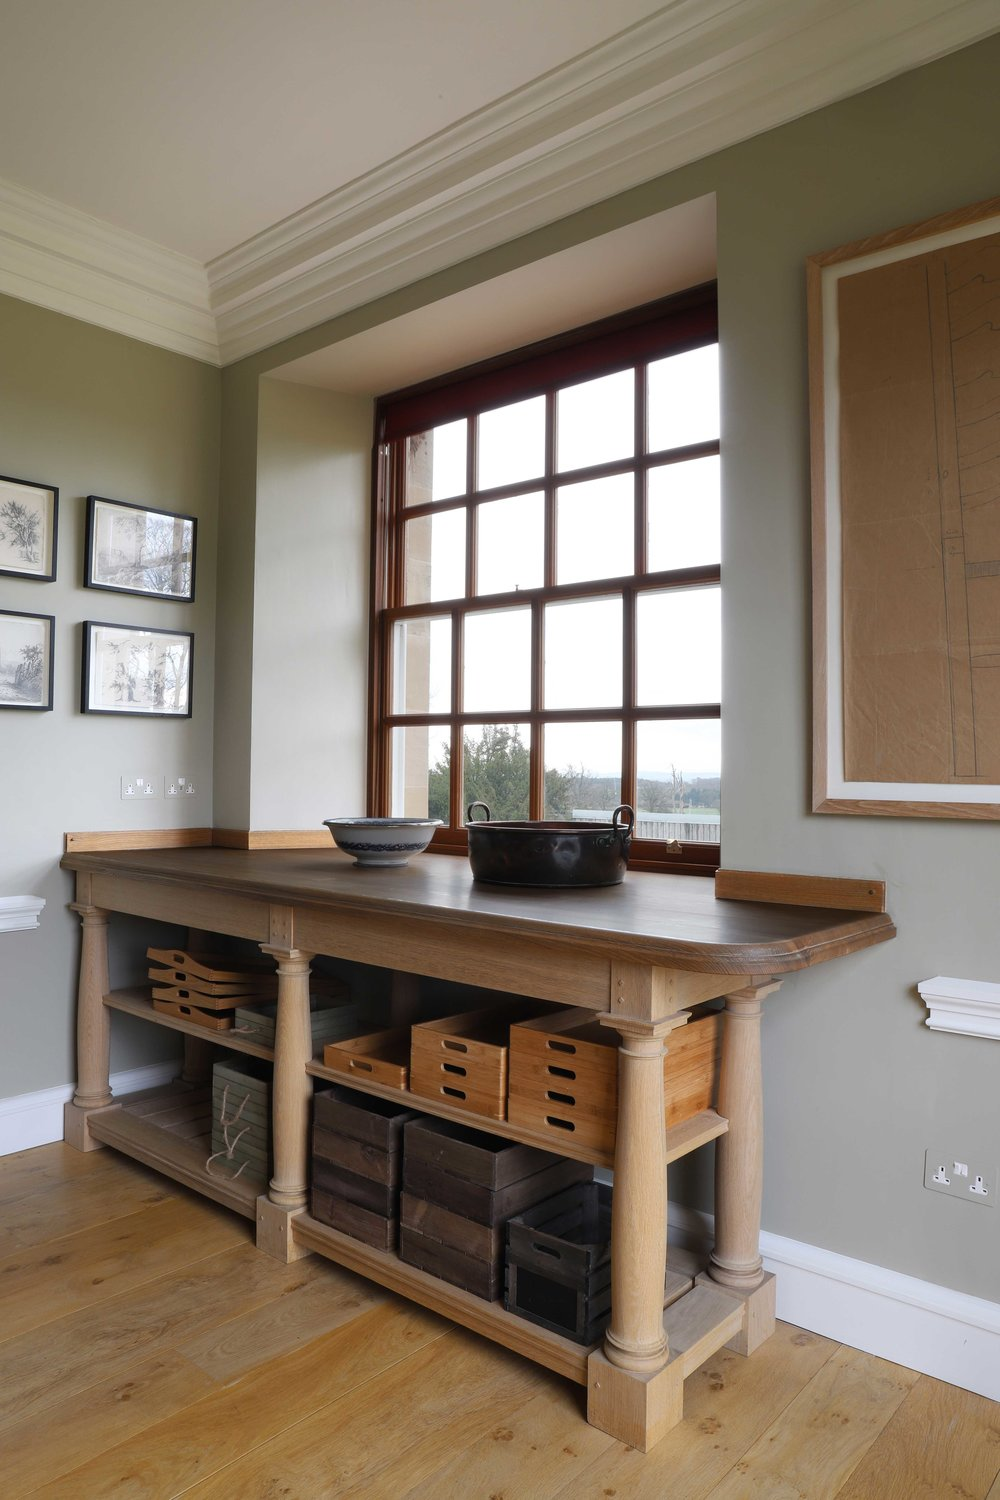 Fitted countertop fro kitchen gallery with turned column style legs, Marchmont House.